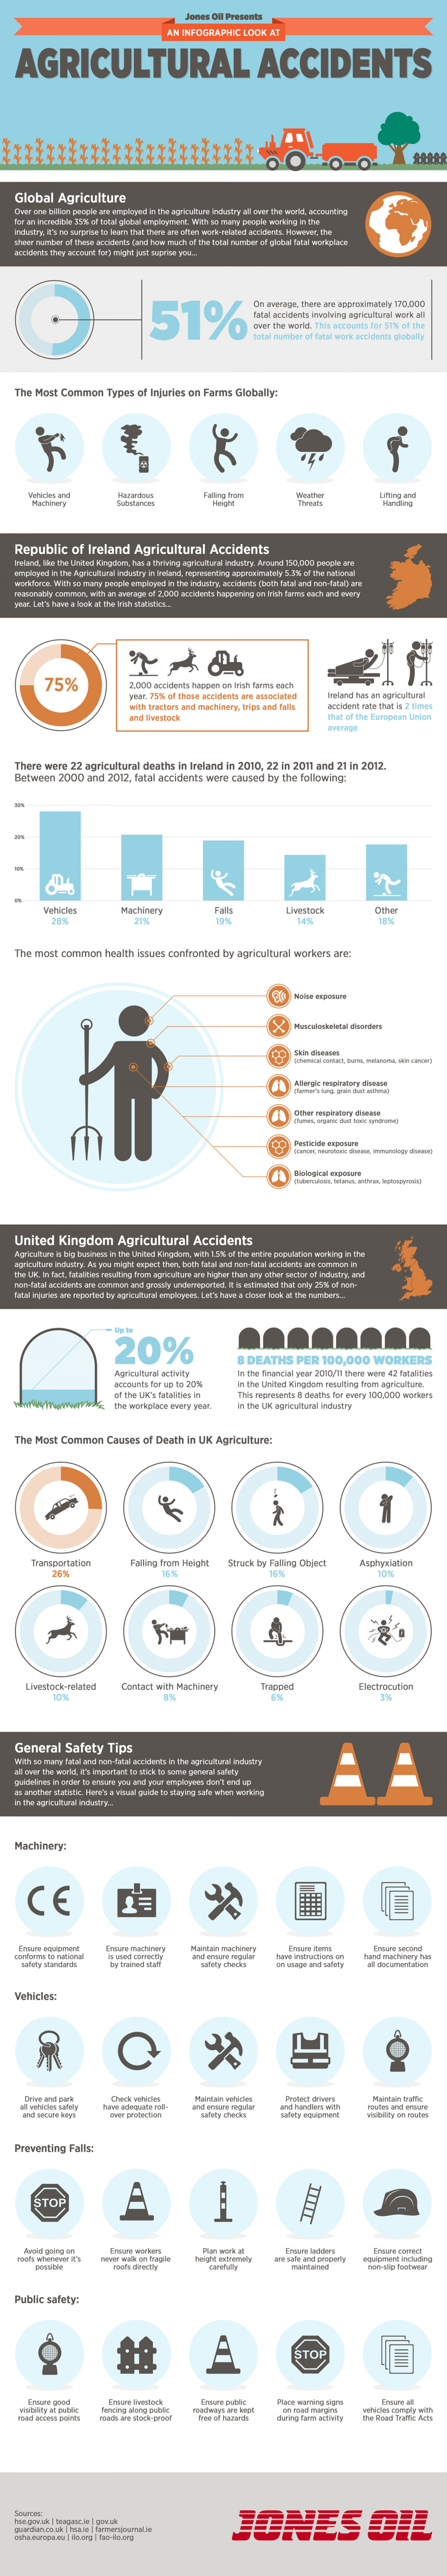 Agricultural Accidents Infographic